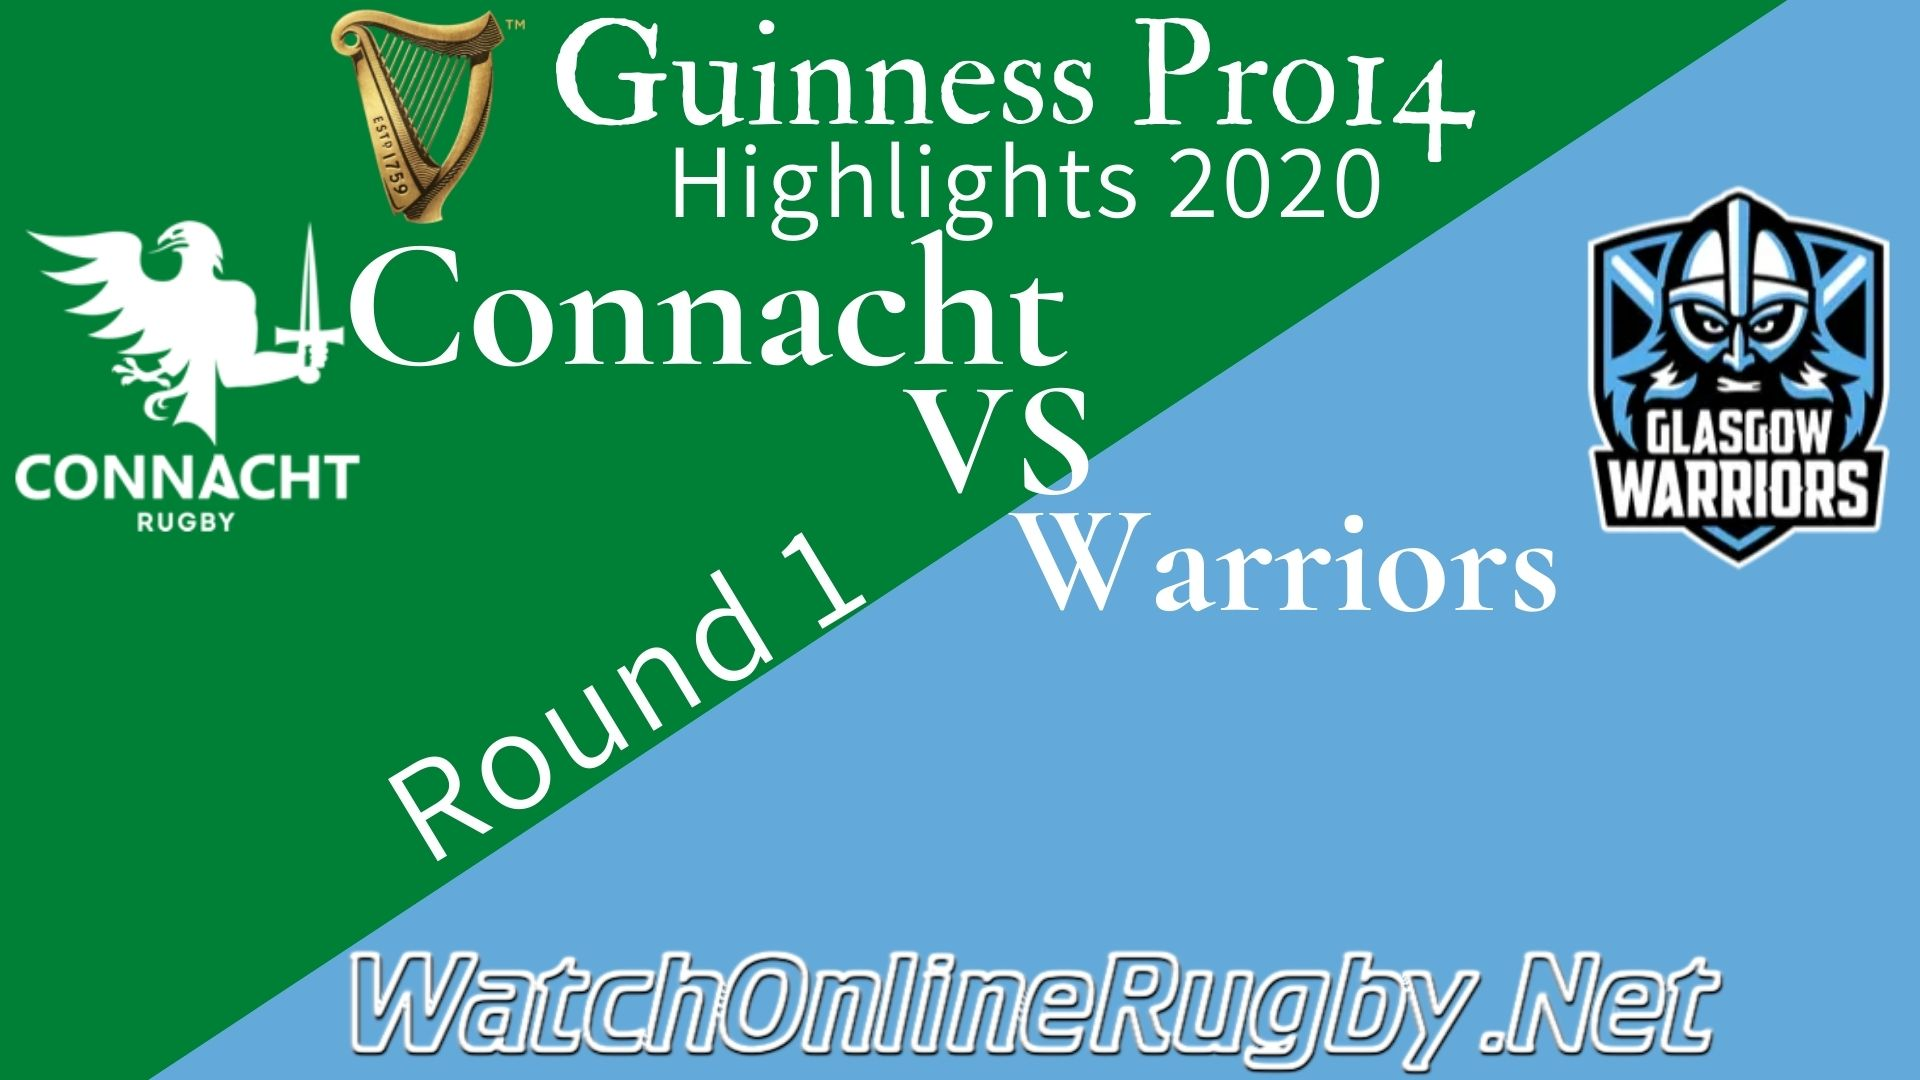 Connacht vs Glasgow Warriors RD 1 Highlights 2020